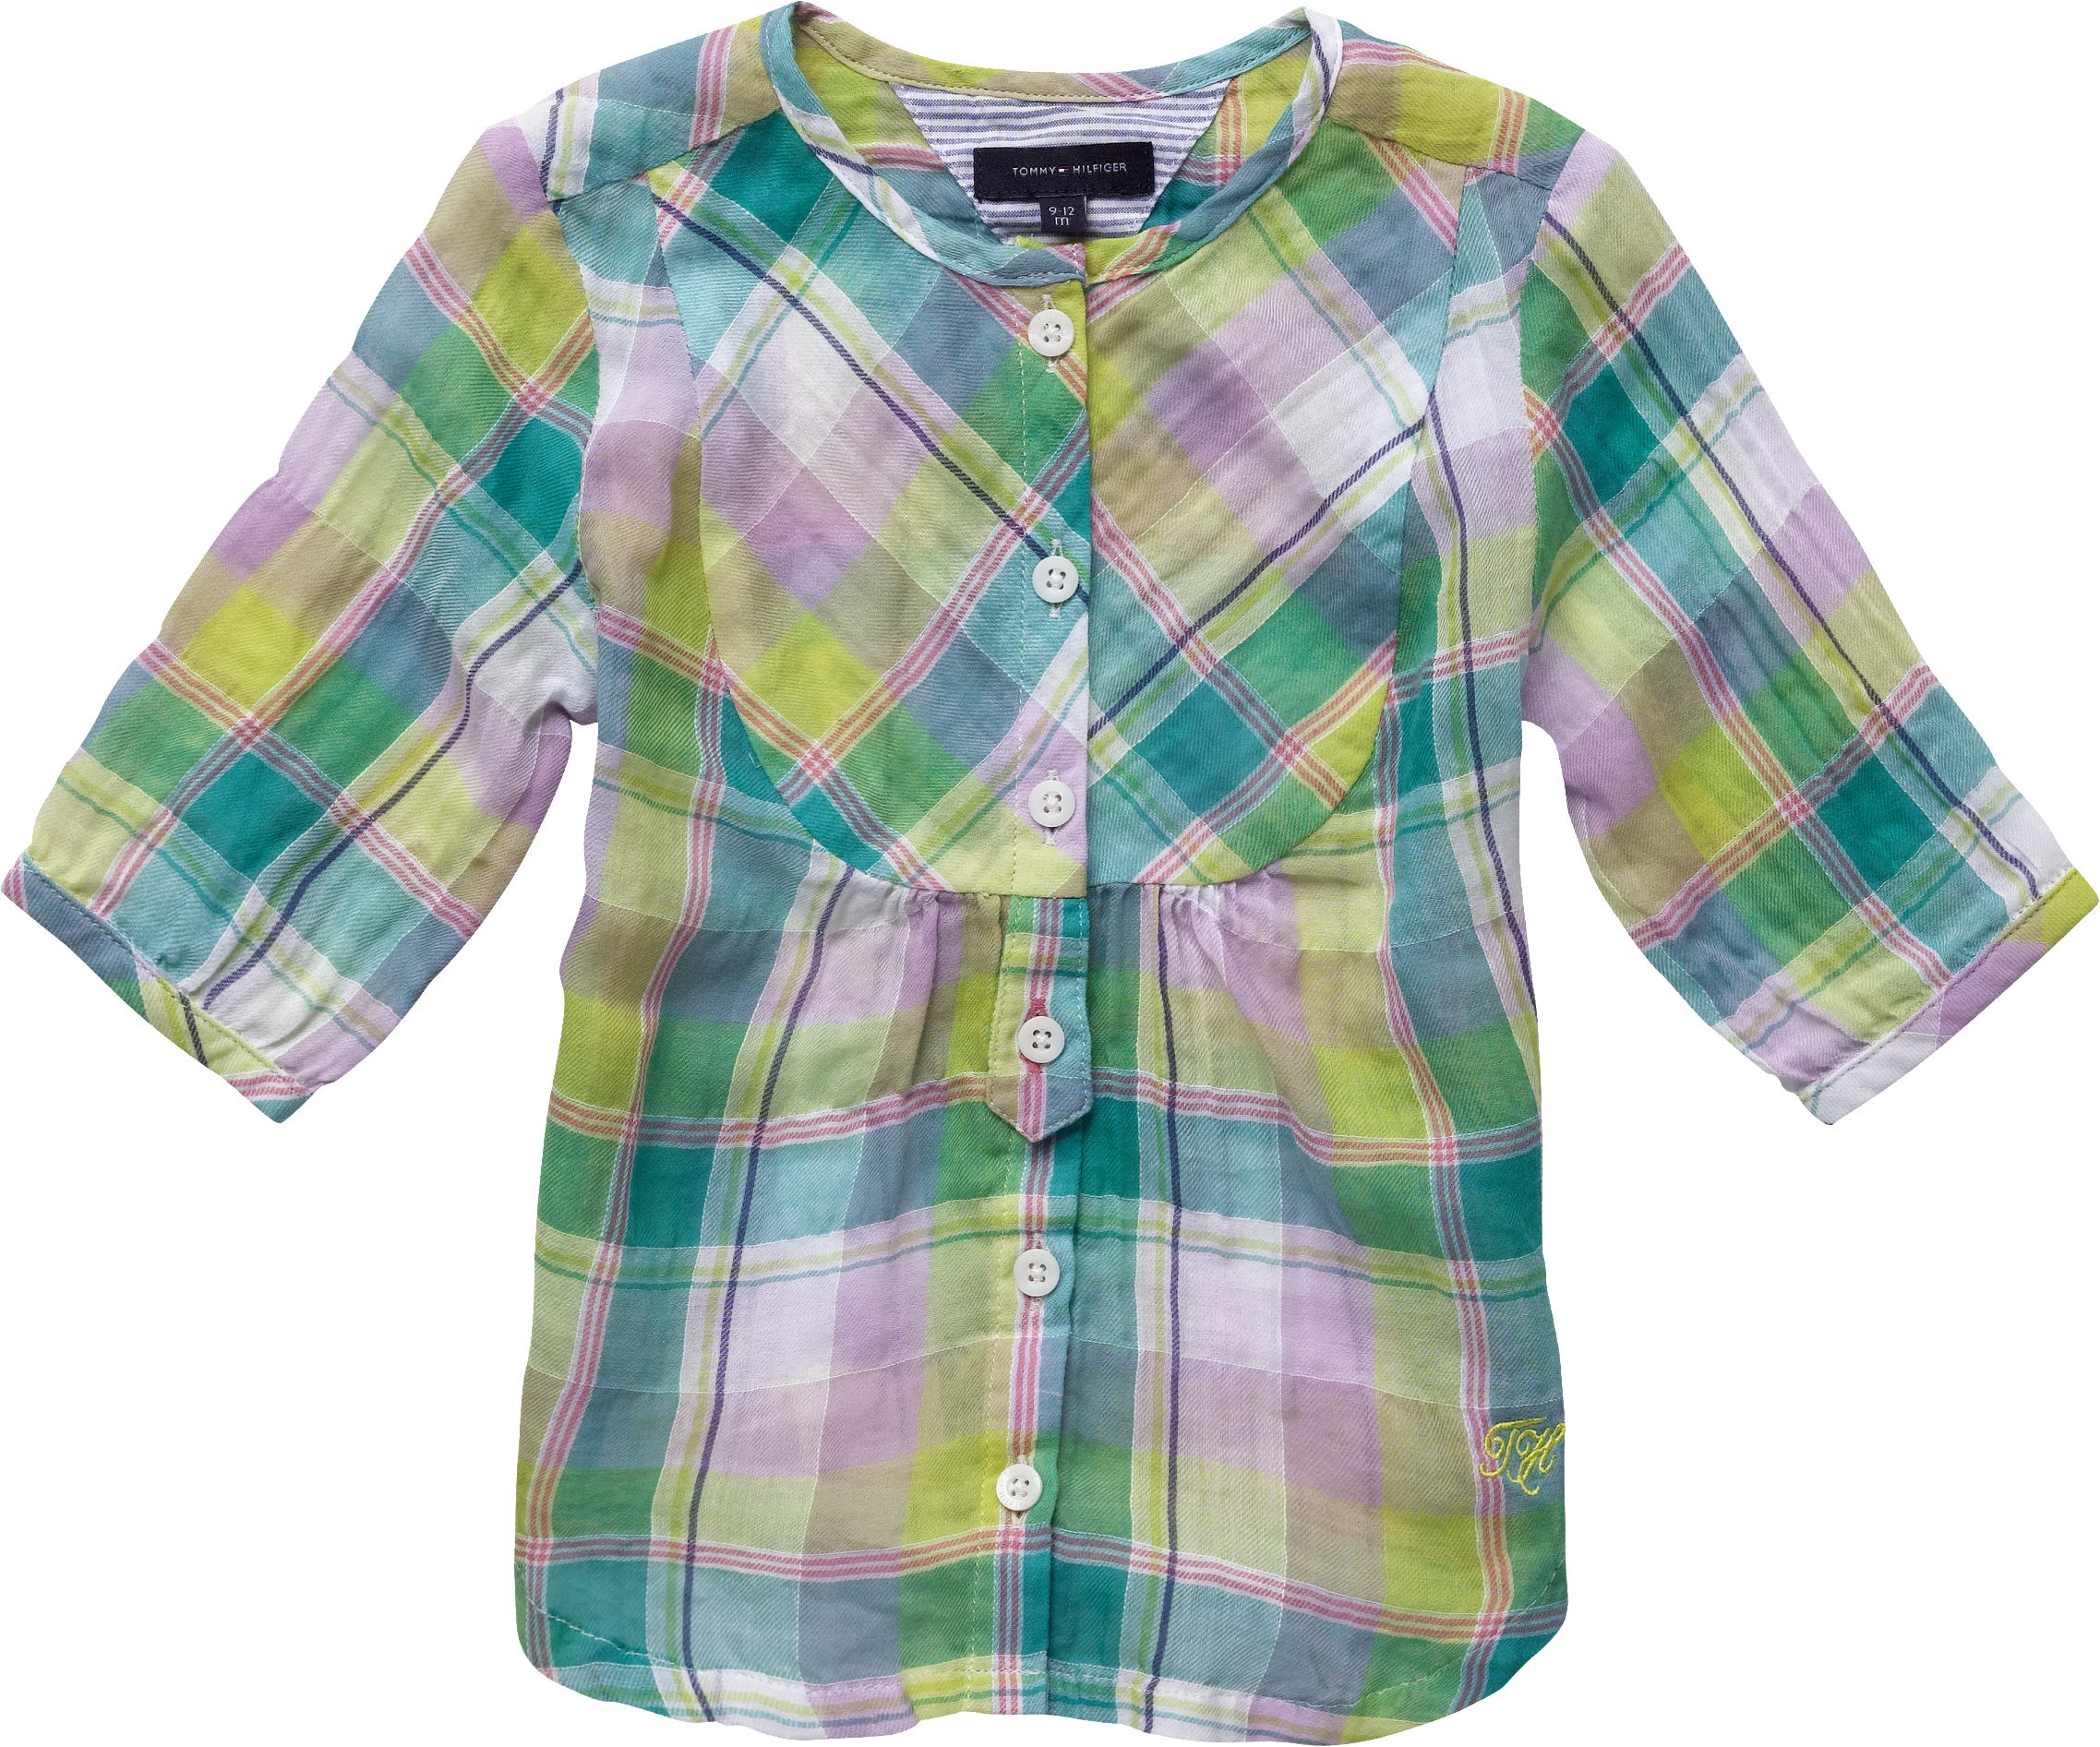 Tommy Hilfiger East side check mini blouse, product image